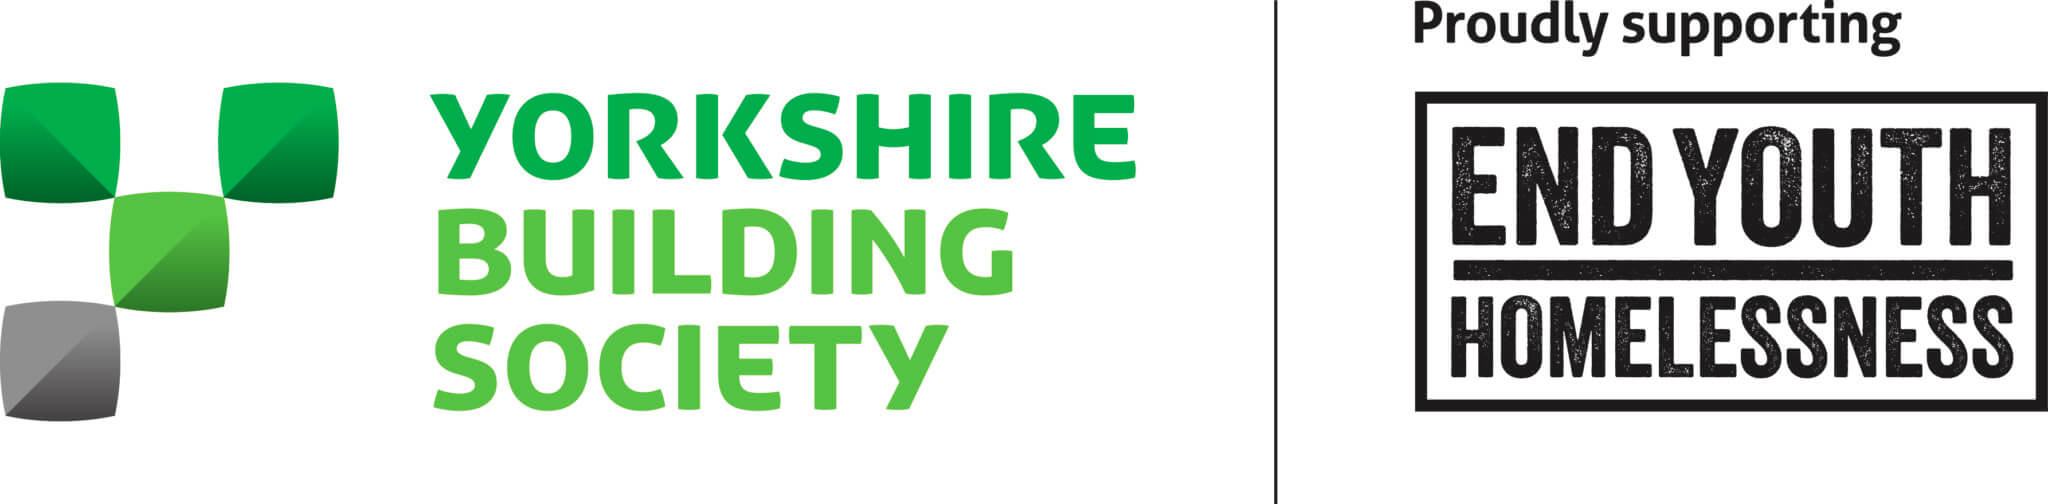 Yorkshire Building Society EYH logo